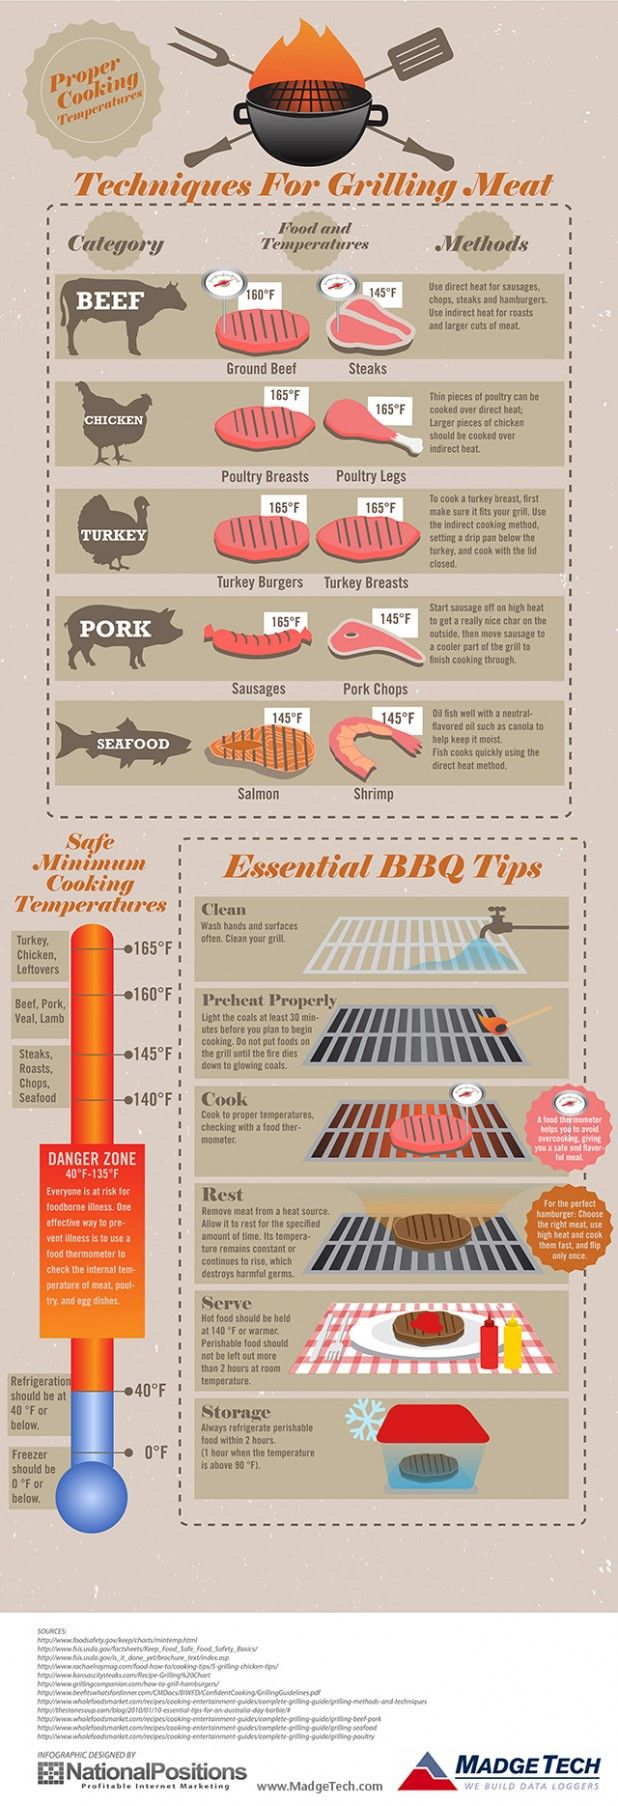 How to Grill Meat by madgetech via visual.ly #Infographic #Grill_Meat  More people need to see this , from Jane Wang